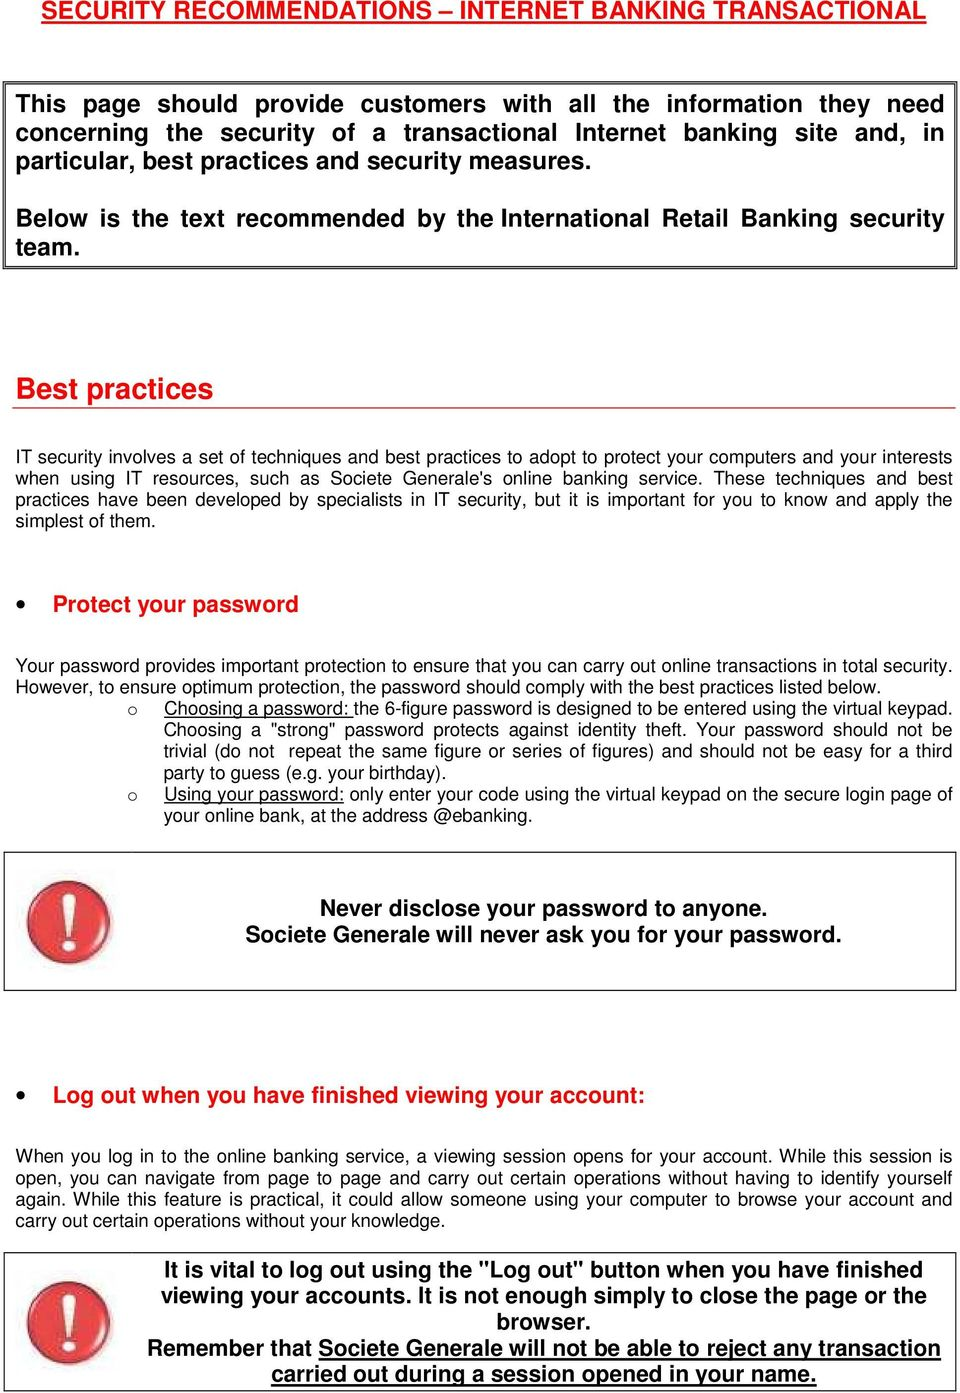 SECURITY RECOMMENDATIONS INTERNET BANKING TRANSACTIONAL - PDF